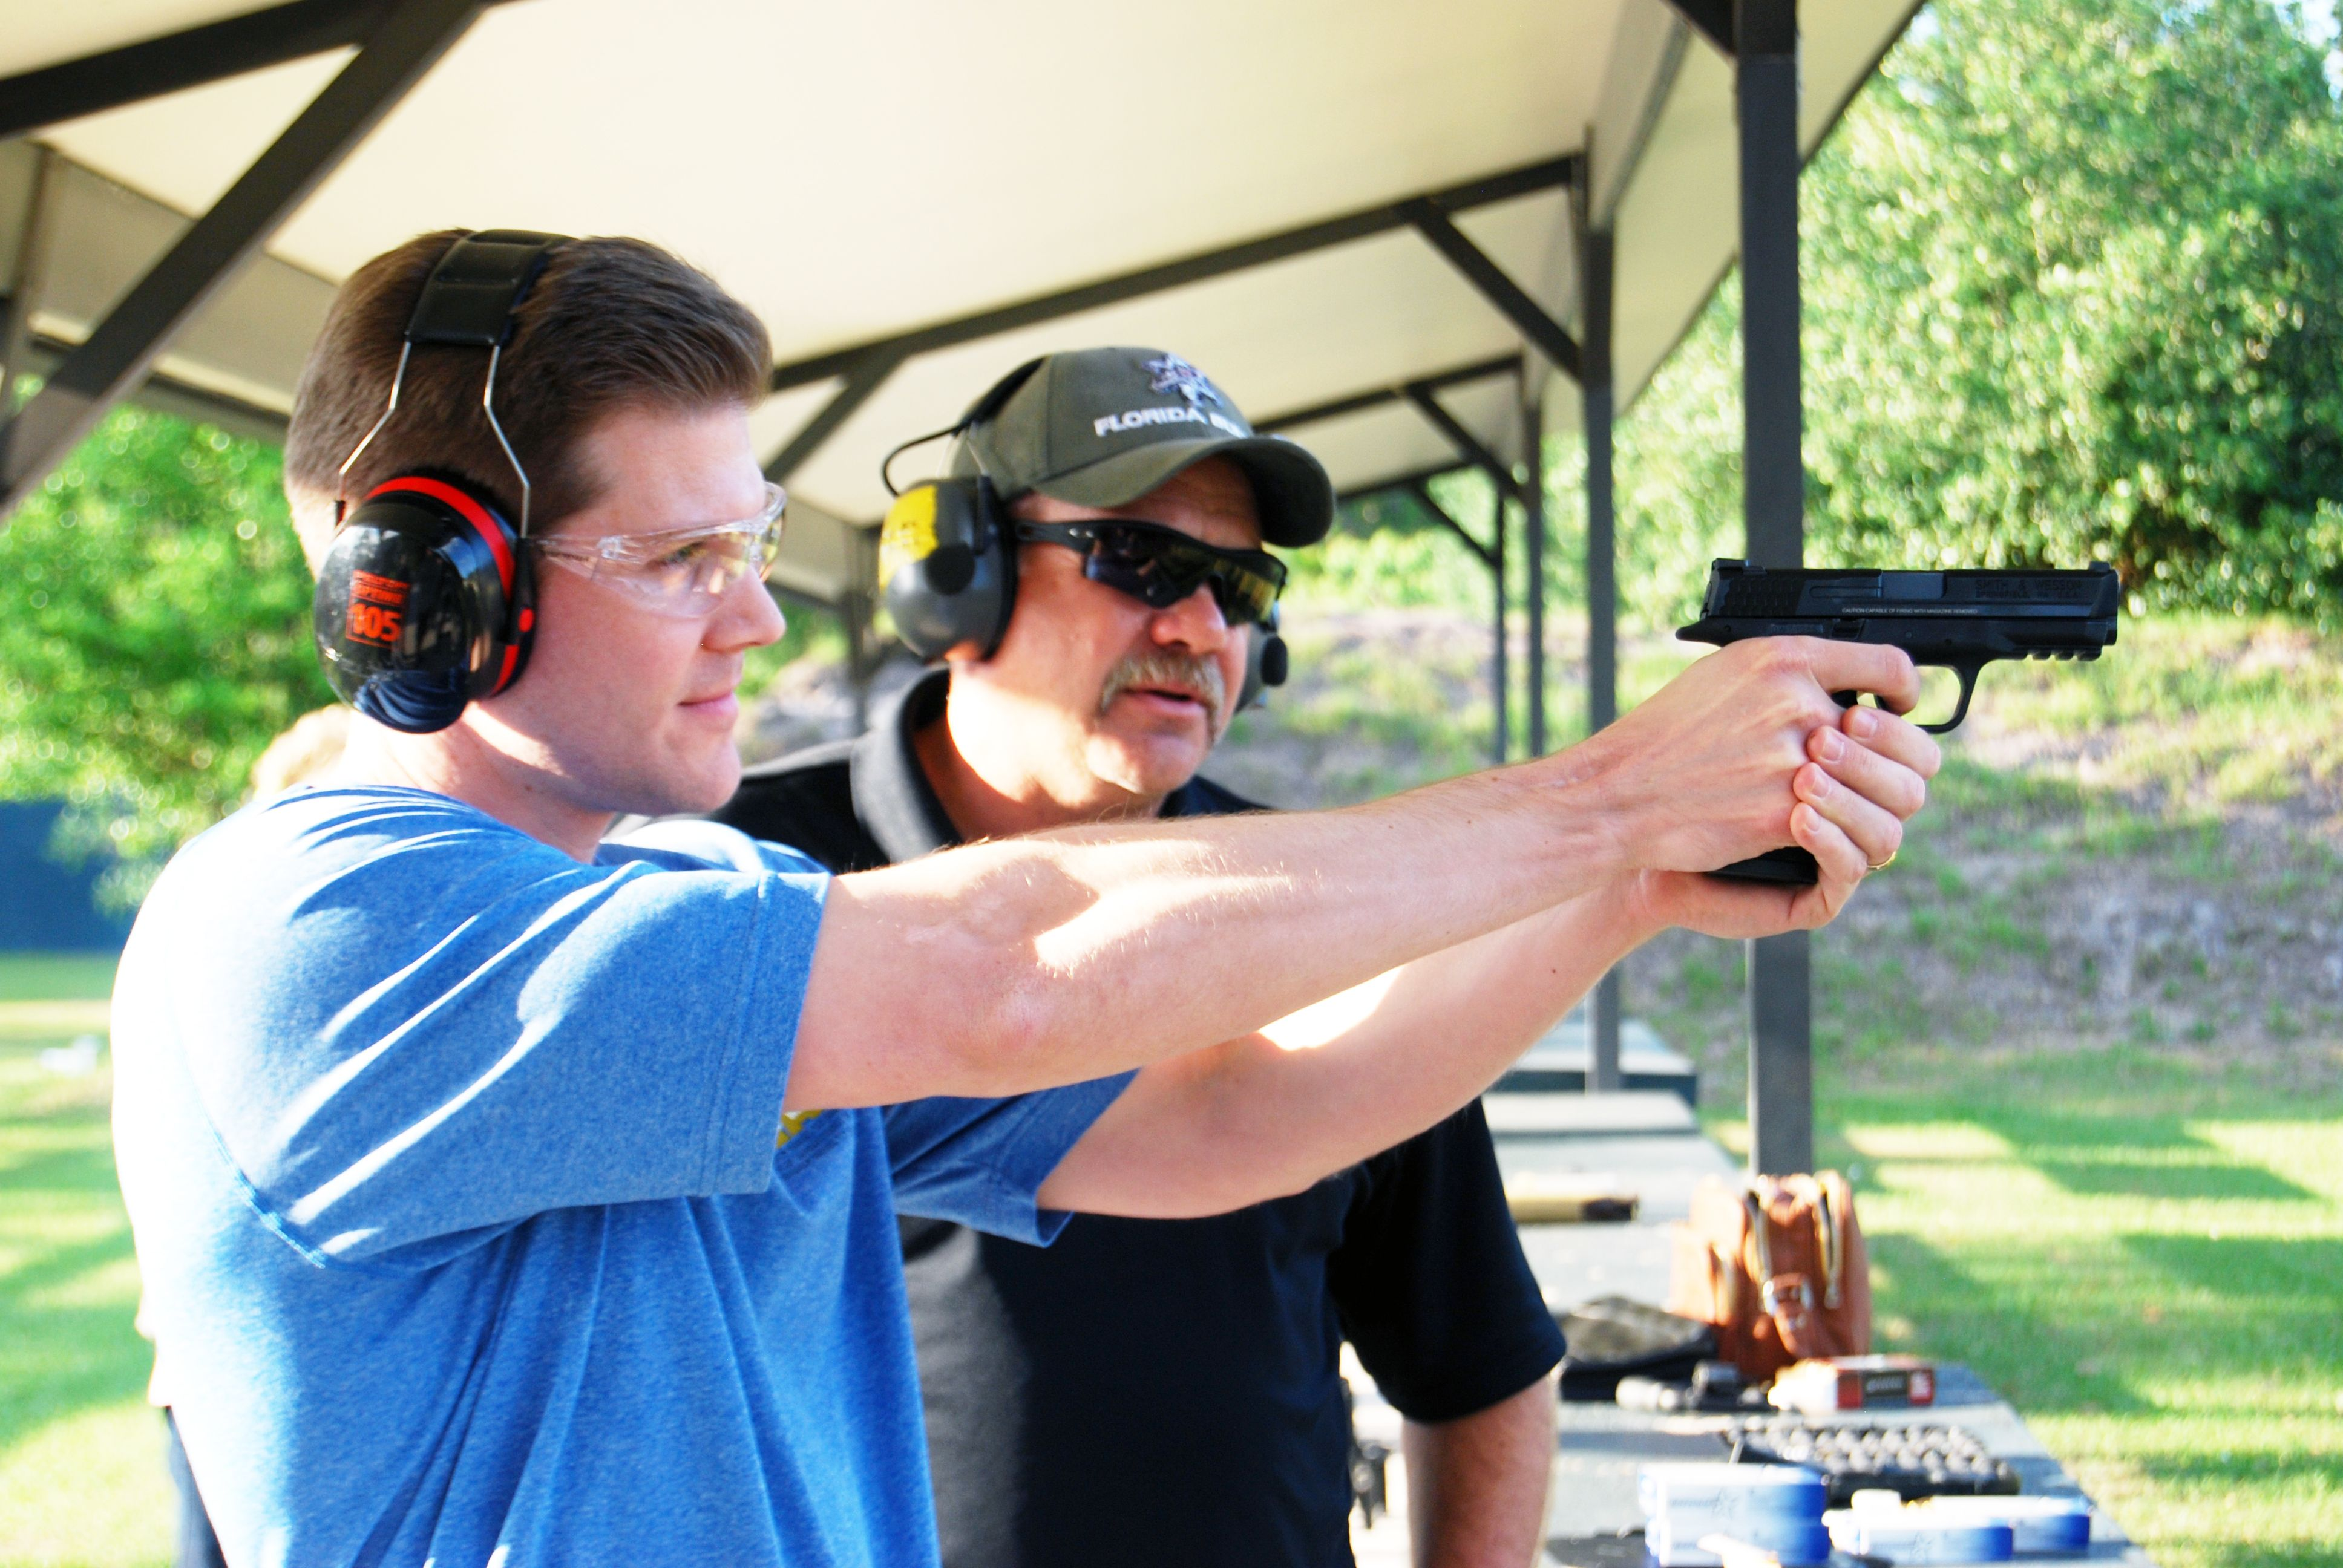 Basic Pistol & Concealed Carry Course Geared towards new